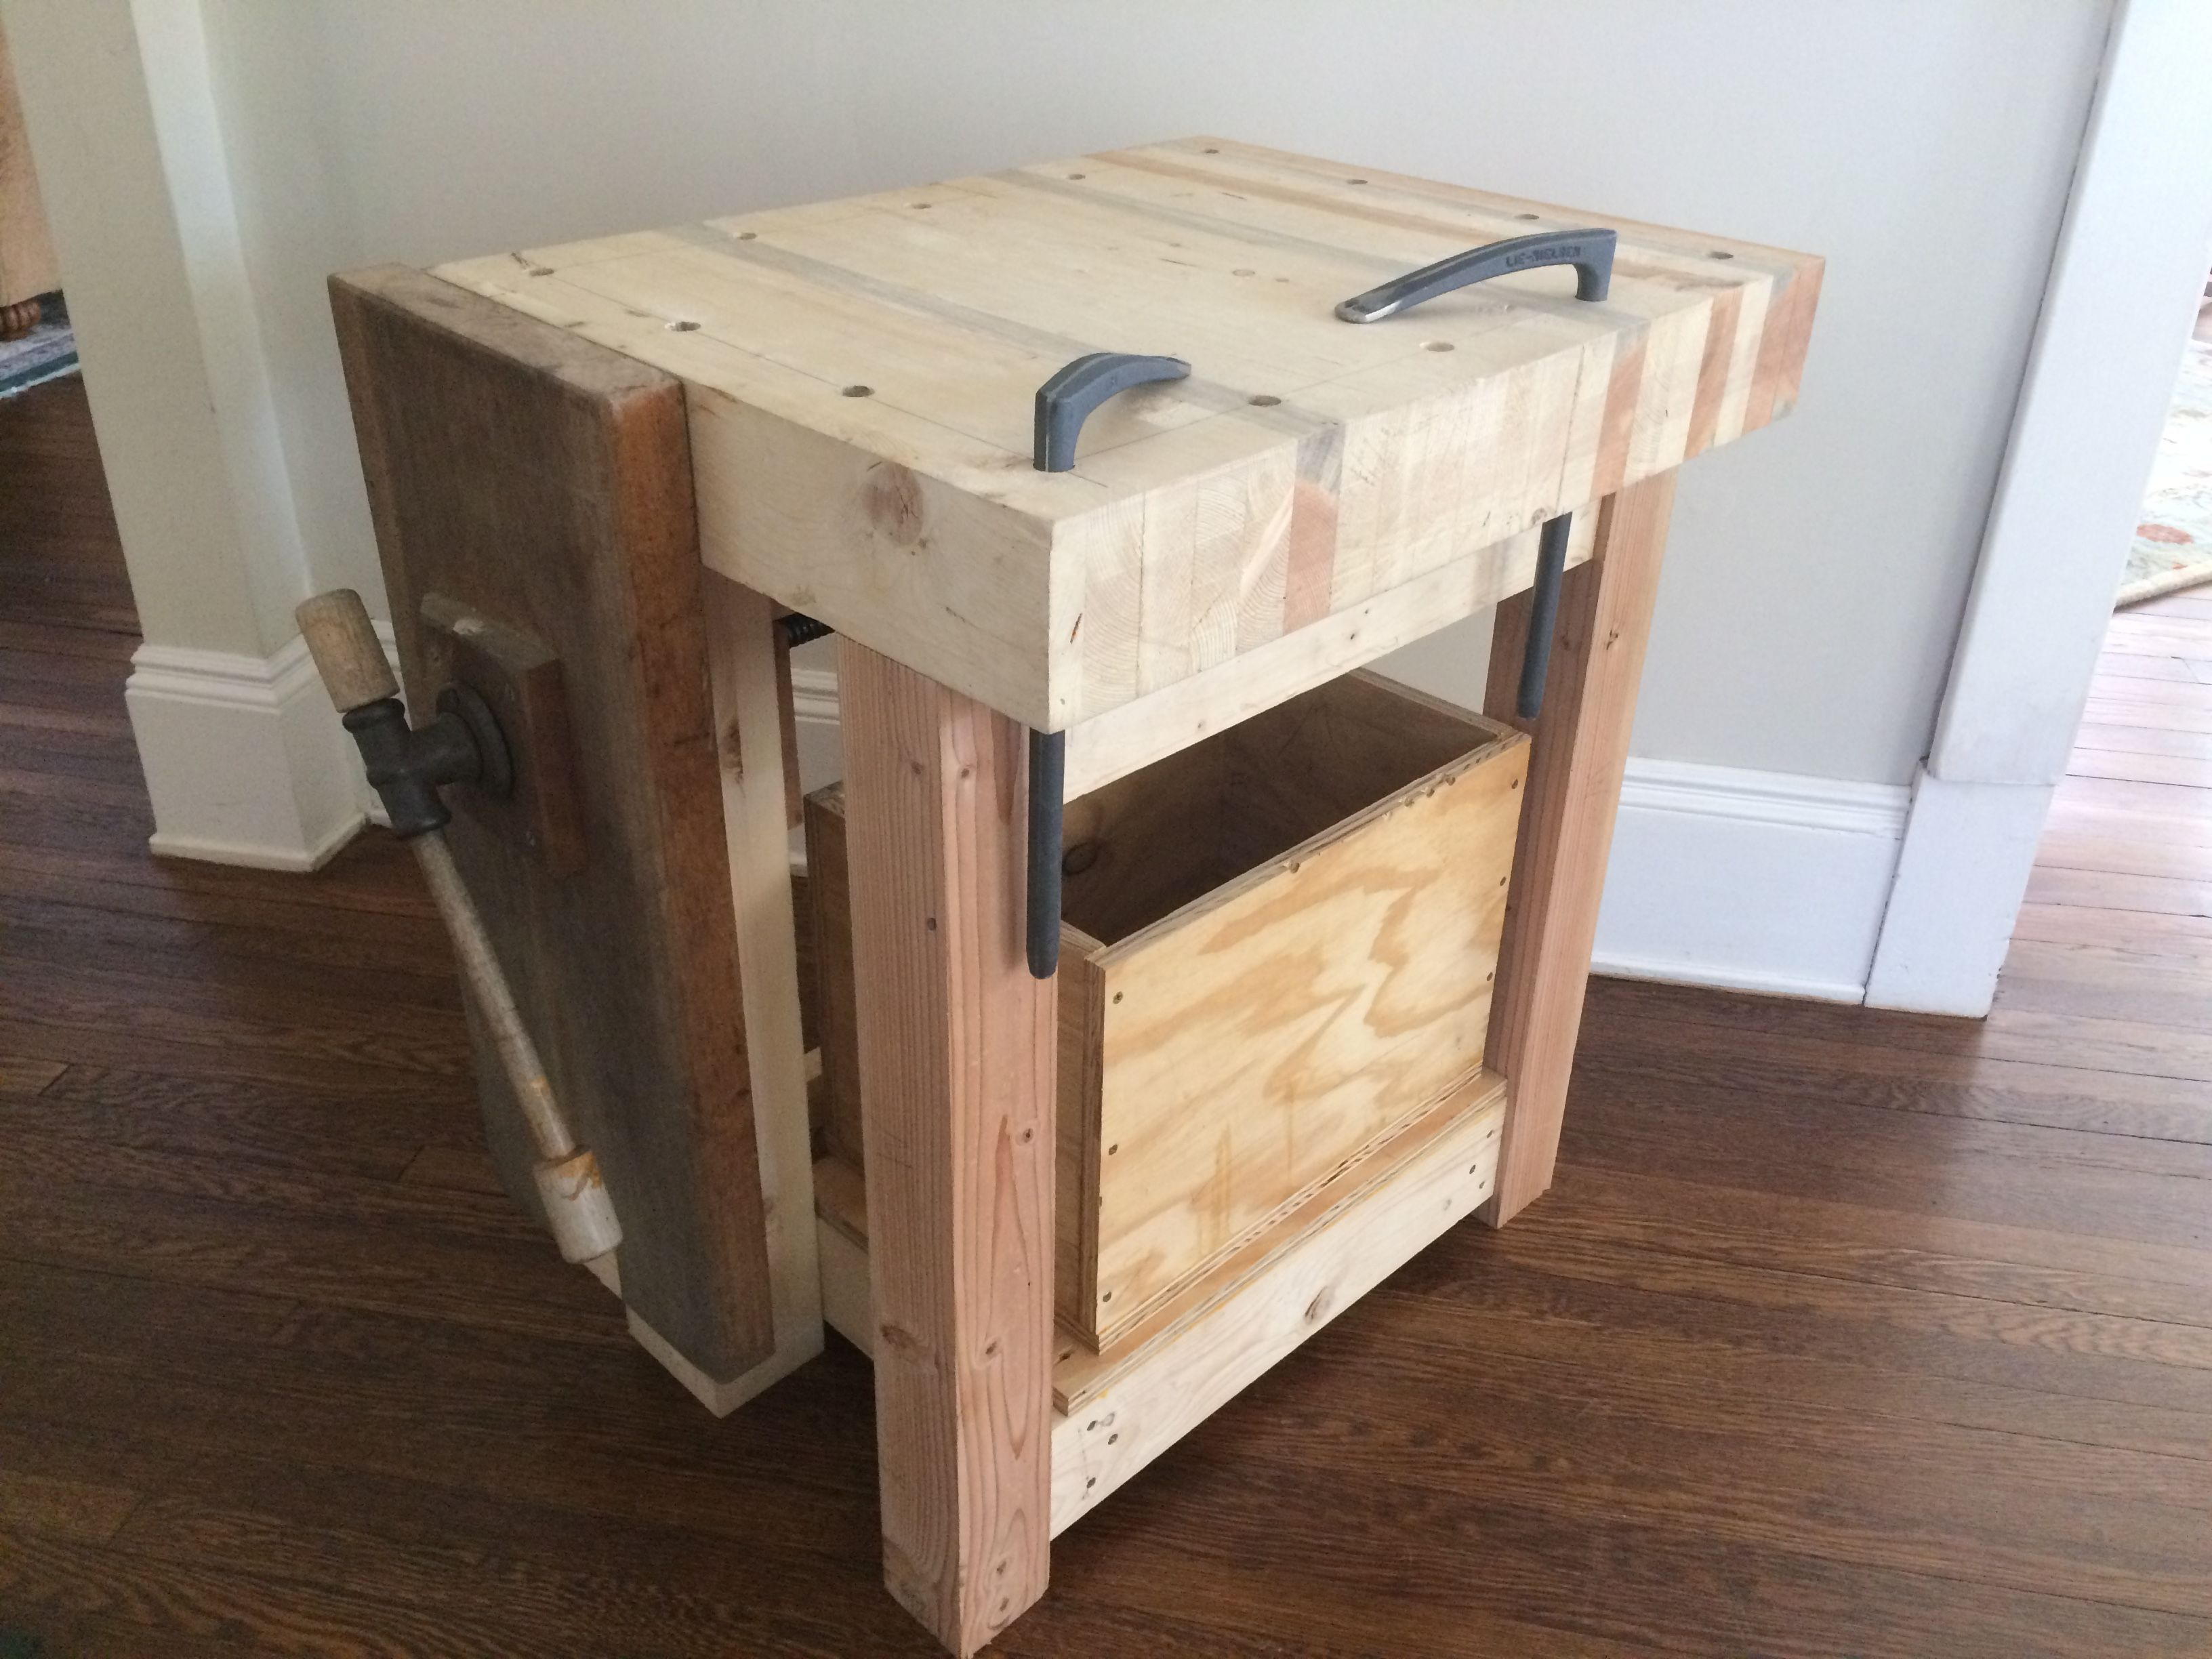 Windsor Seat Carving Workbench Based On Picture From The Website